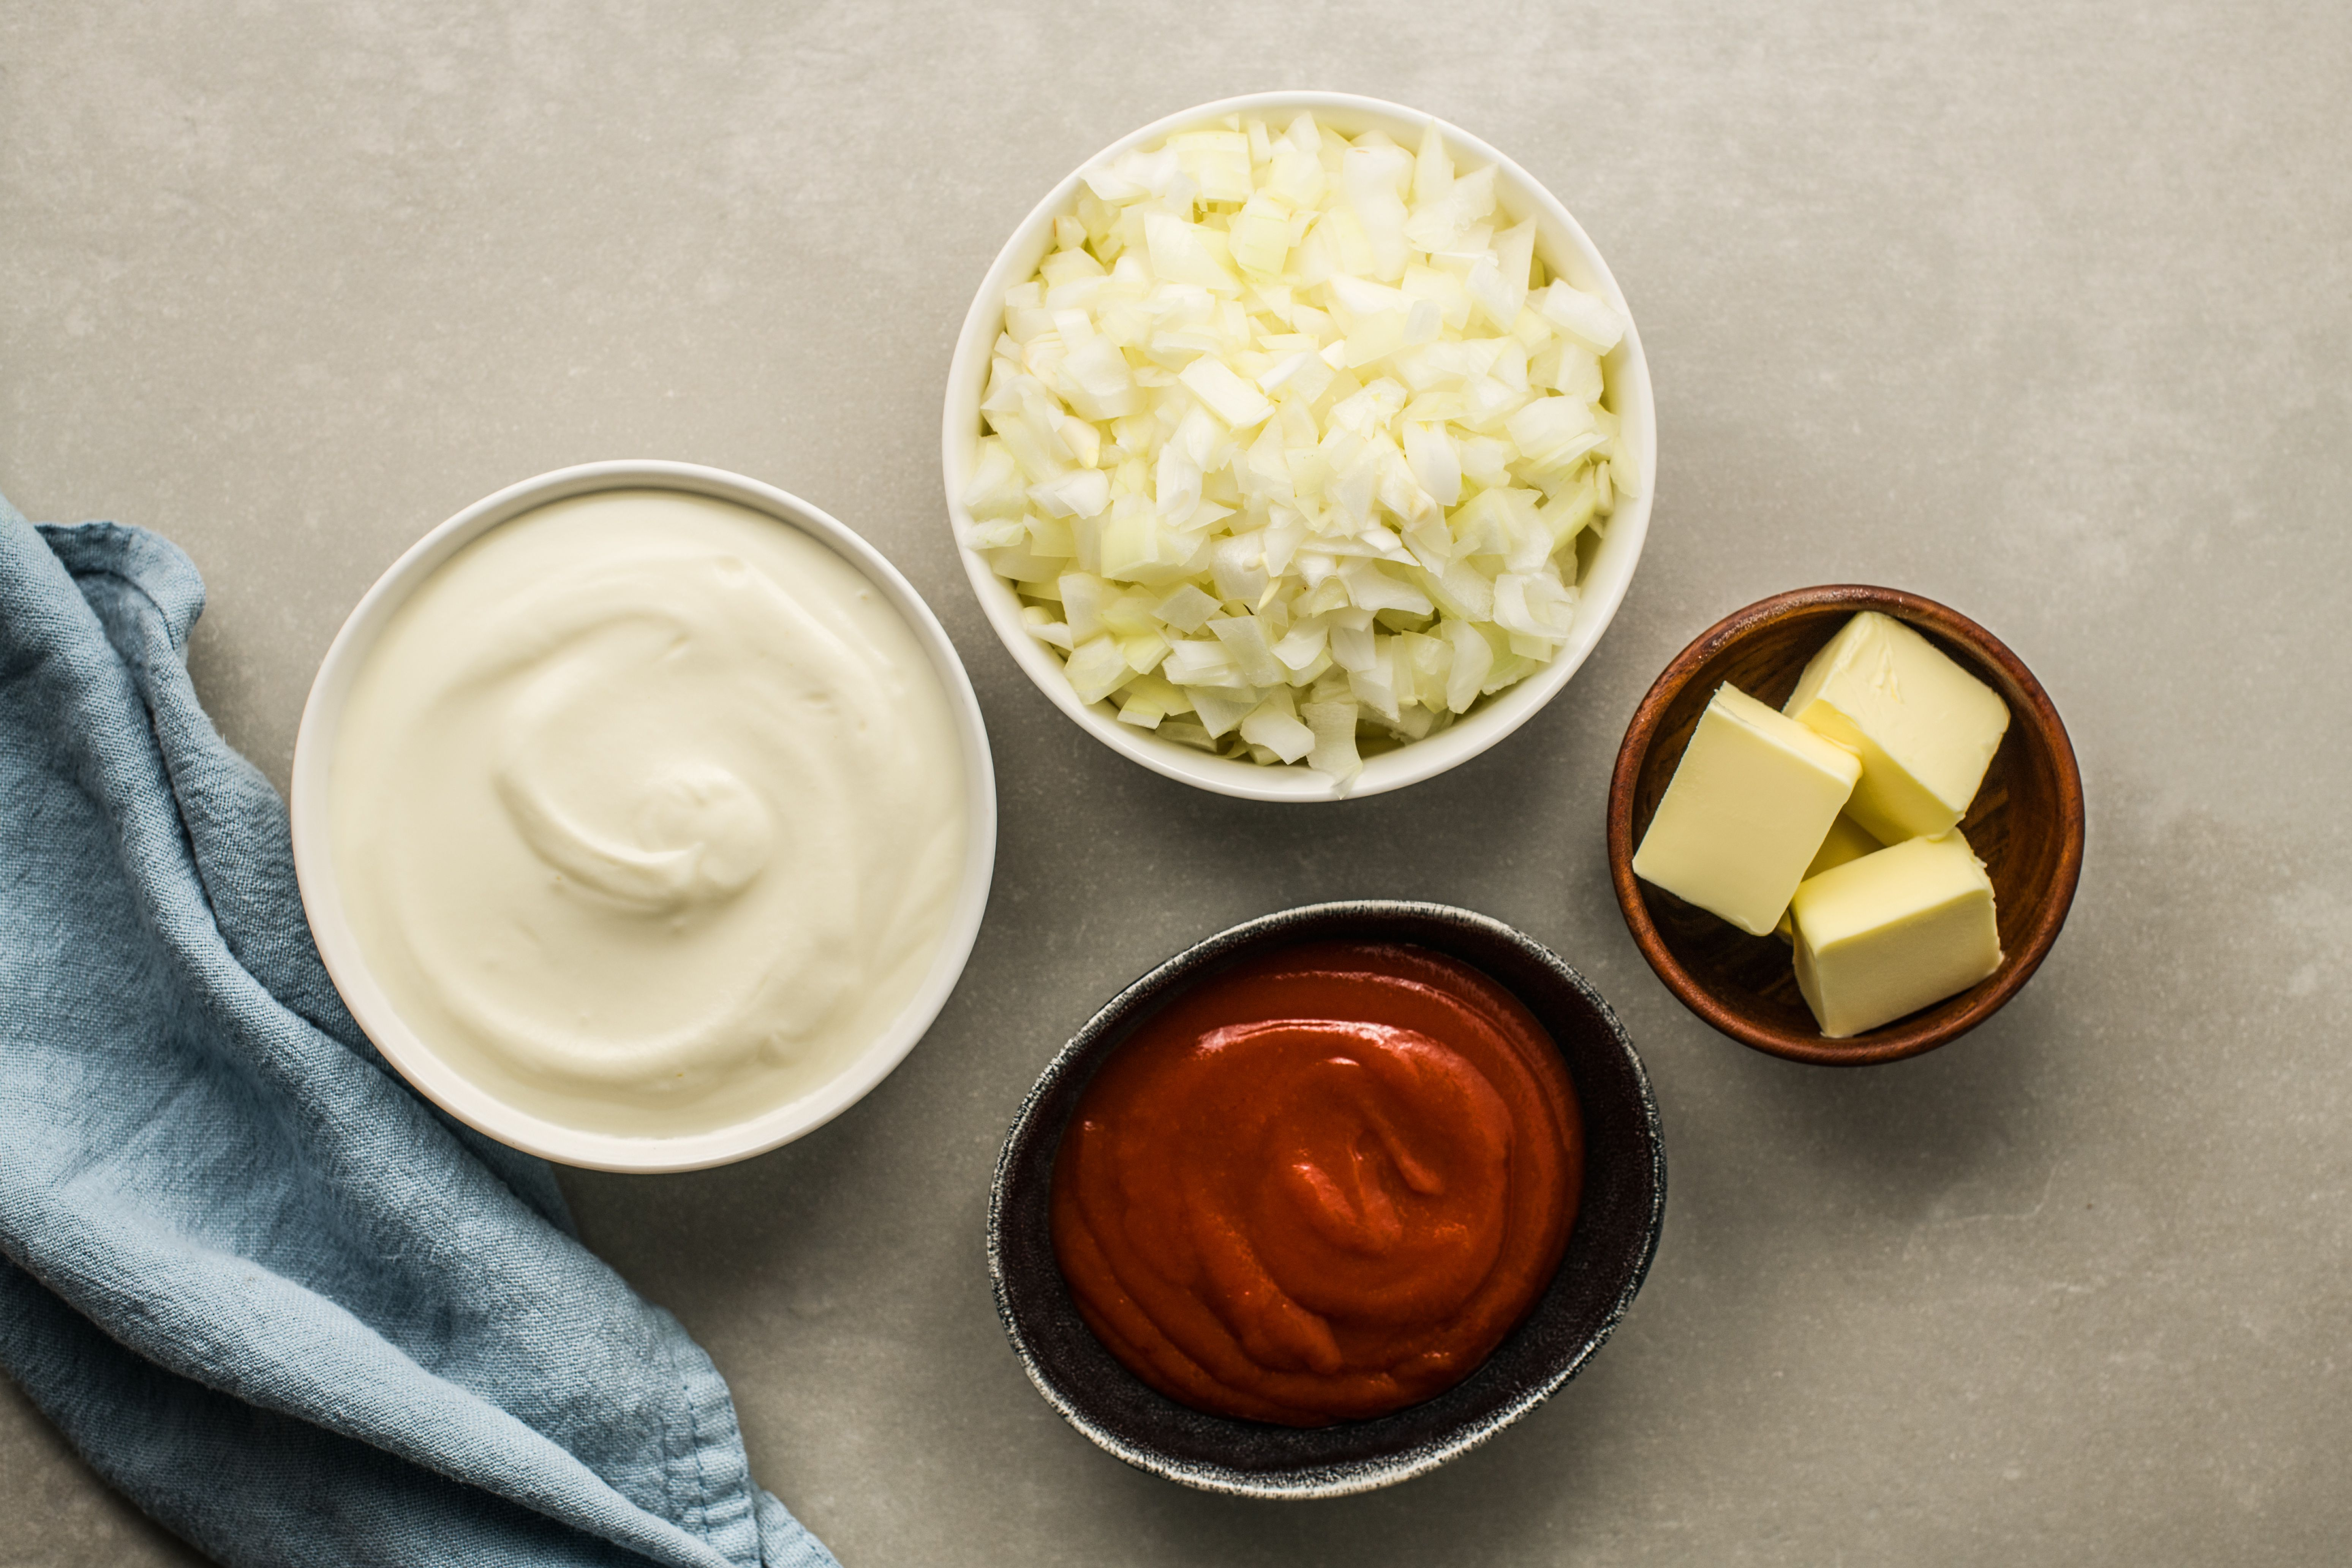 Ingredients for soubise sauce